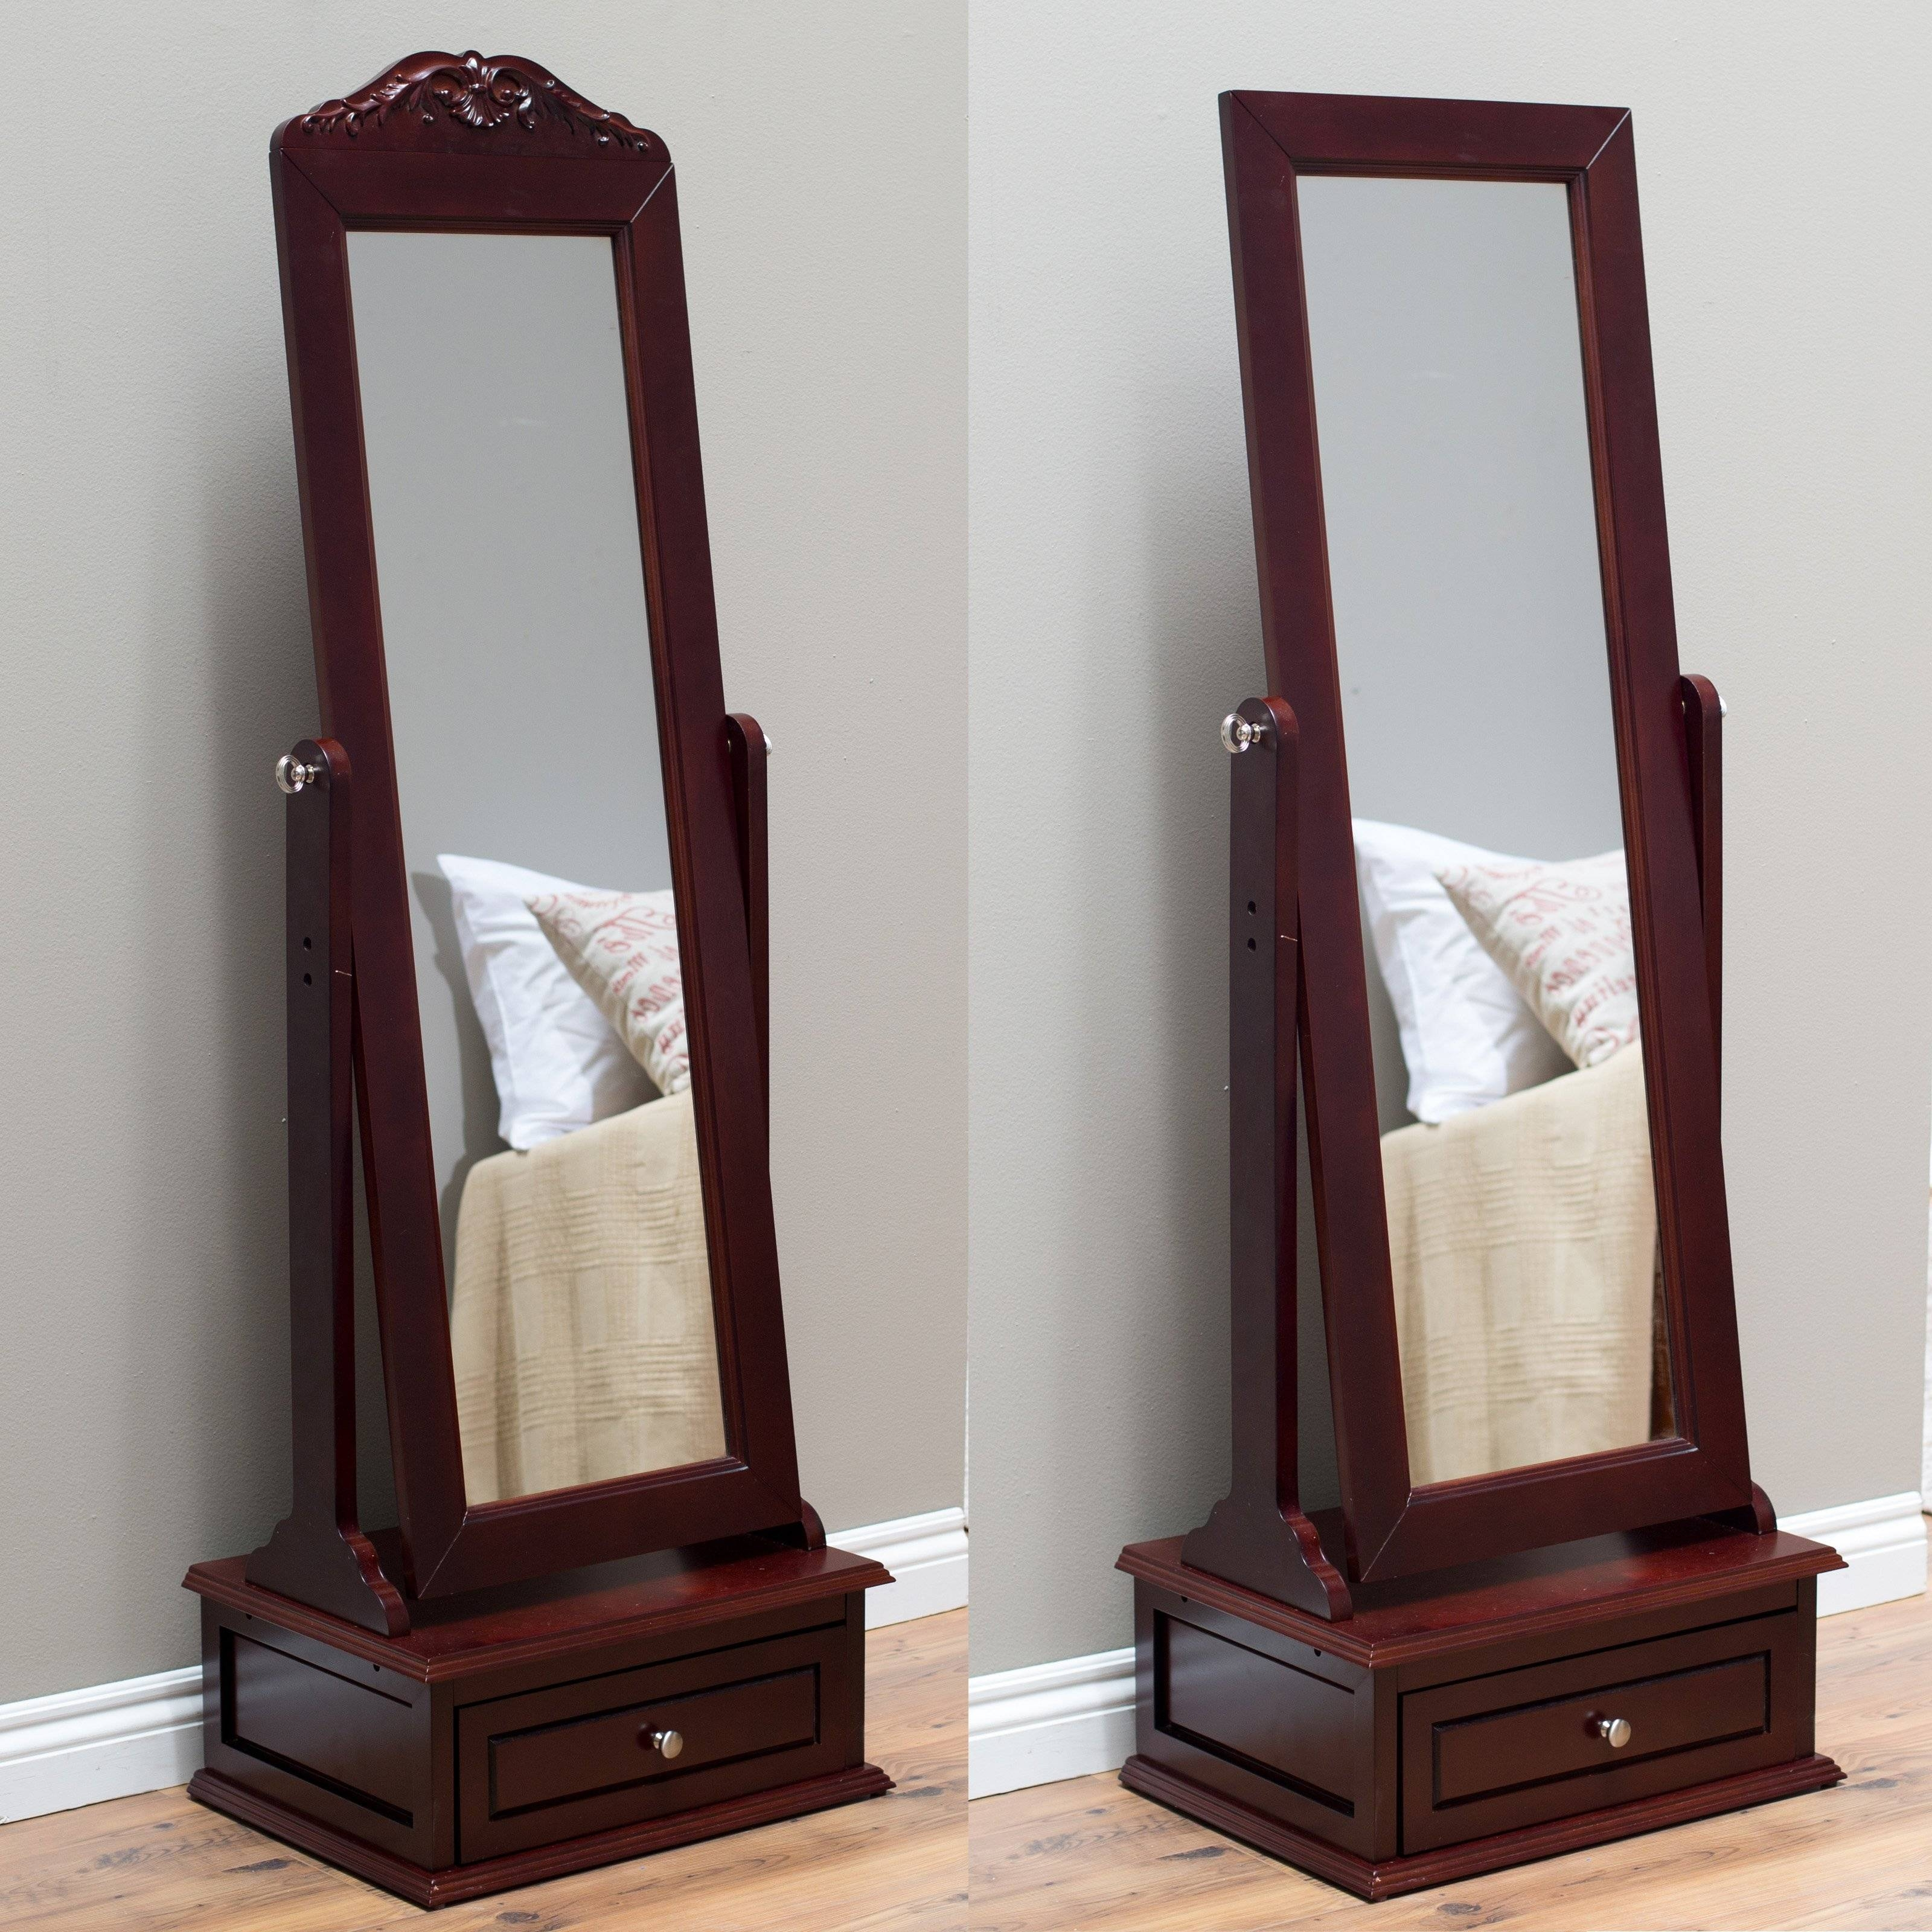 Mirror : Stunning Antique Design Free Standing Silver Dressing With Mirrors On Stand For Dressing Table (View 9 of 15)